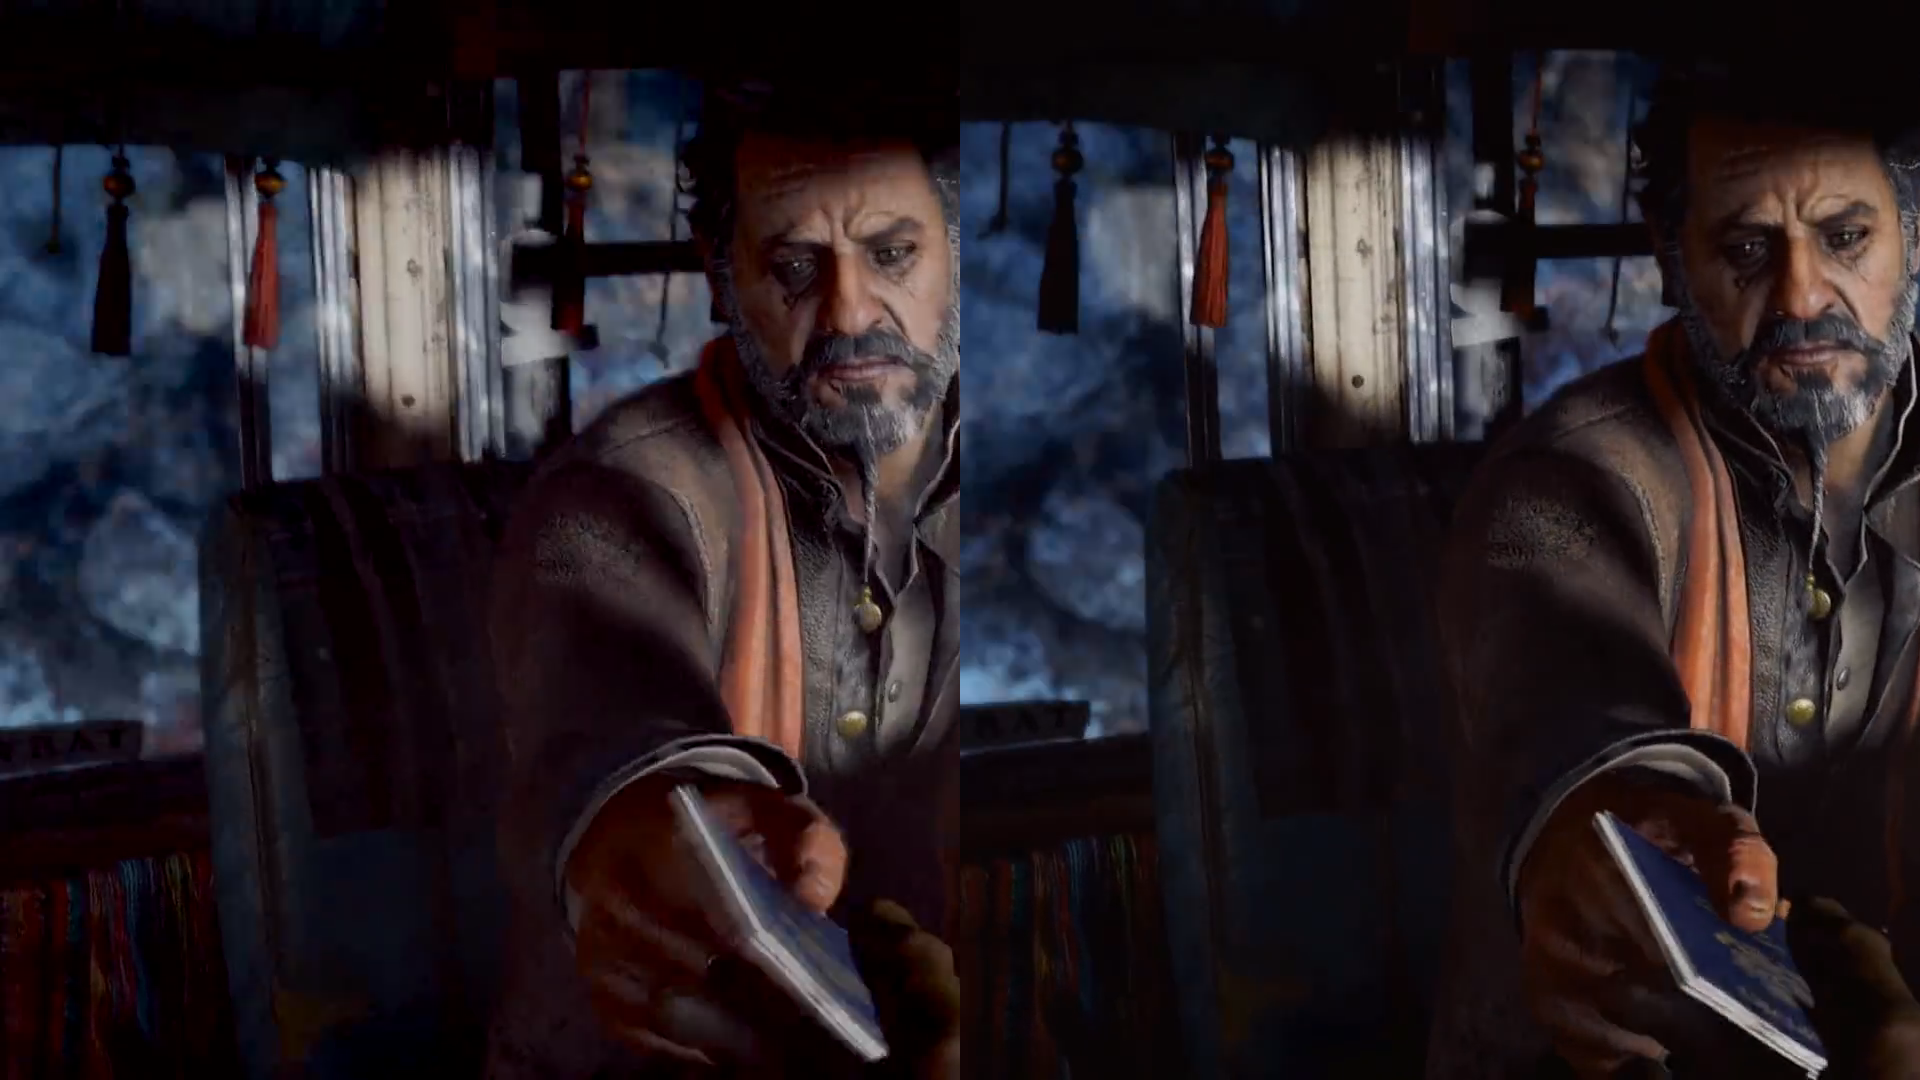 Far Cry 4 Ps4 Vs Xbox One 1080p Video And Screenshot Comparison Farcry4 Pc Game Image